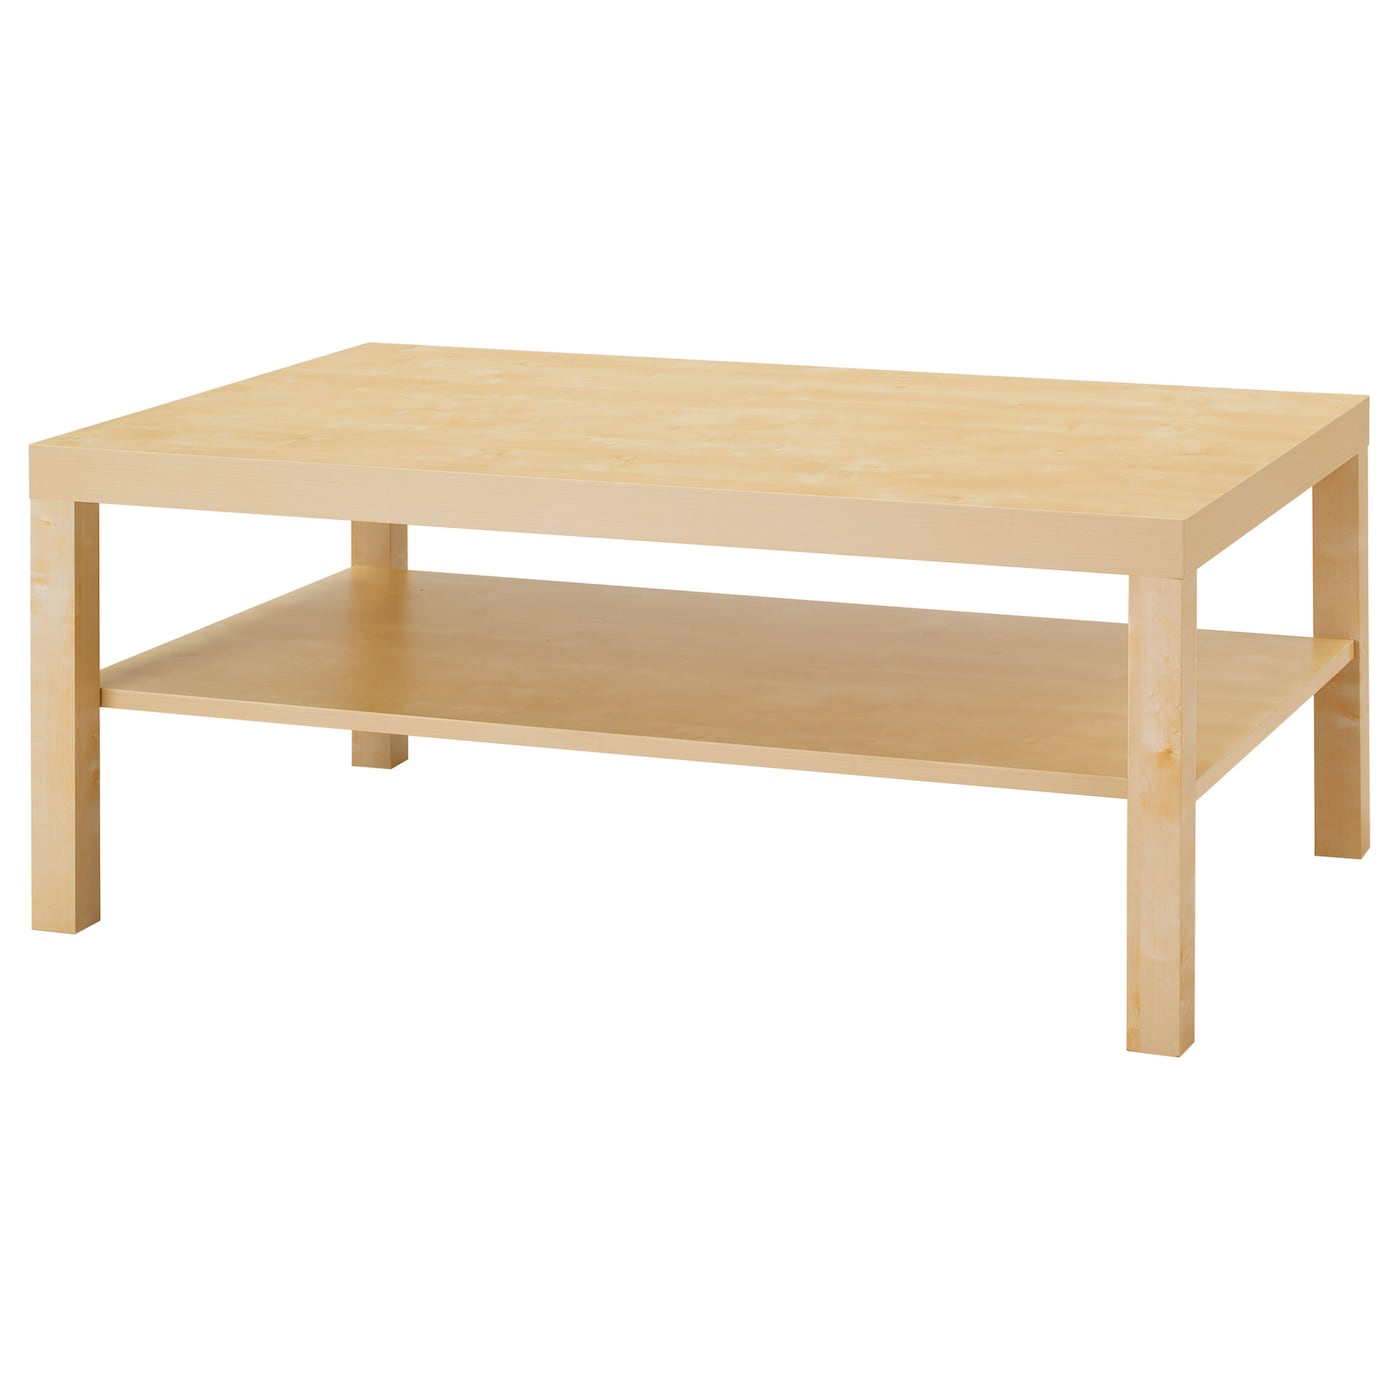 Lack coffee table birch effect 118x78 cm ikea for Table basse bois clair